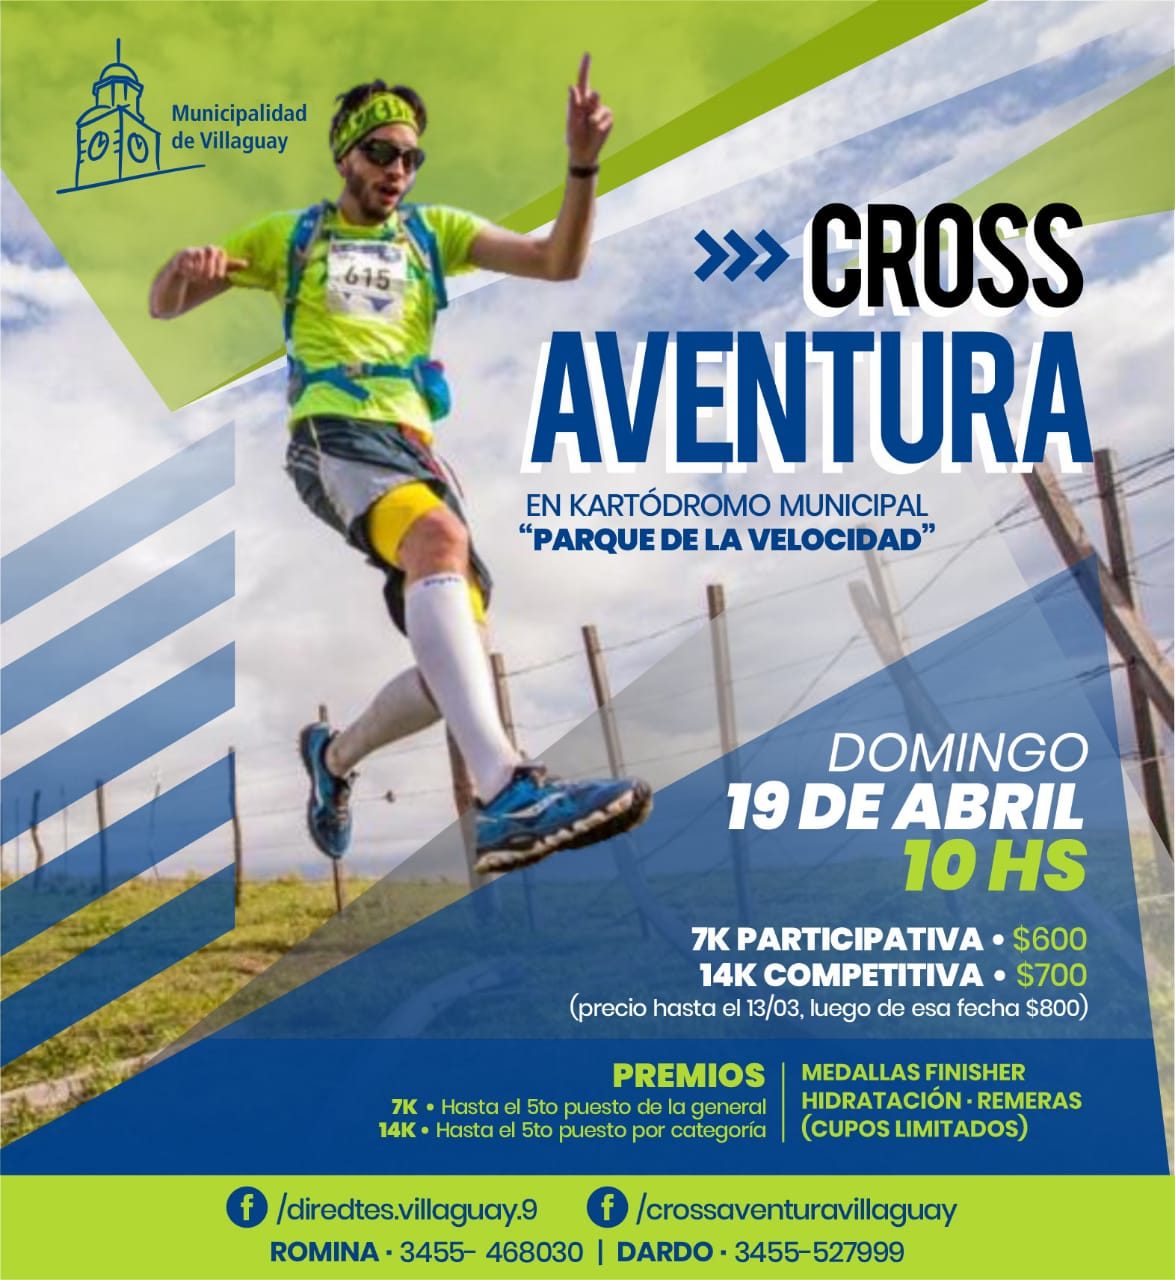 CROSS AVENTURA VILLAGUAY 2020